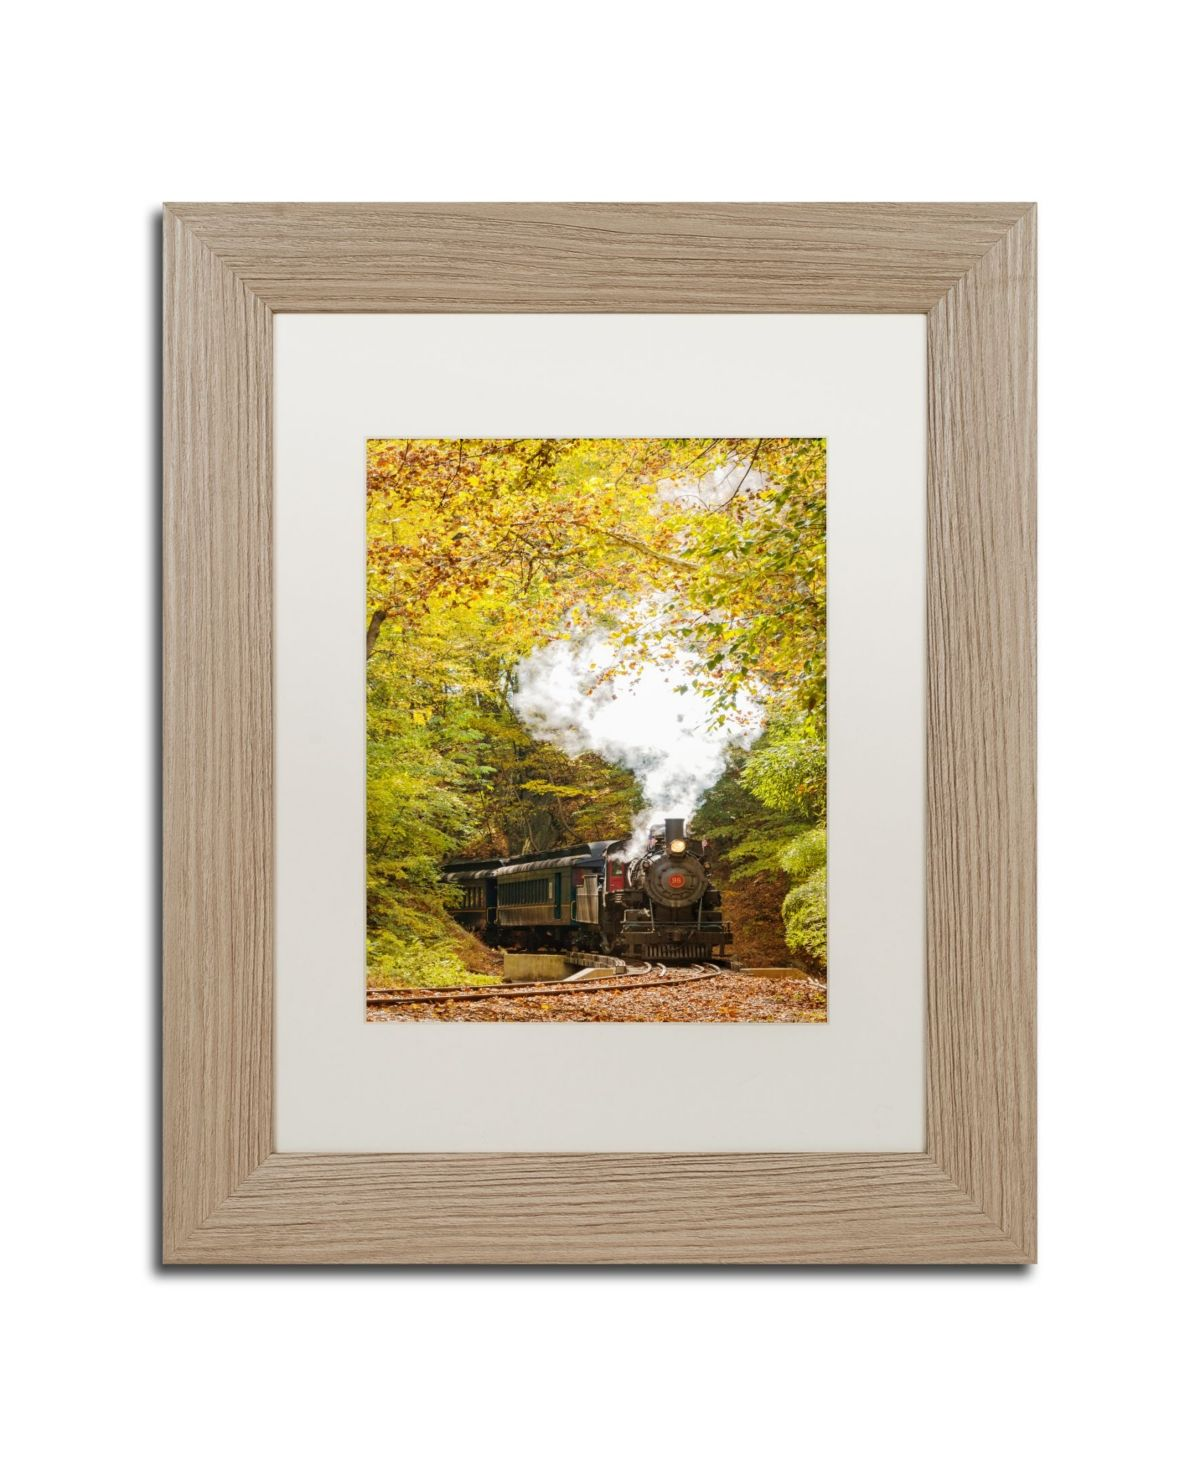 PIPA Fine Art 'Steam Train with Autumn Foliage' Matted Framed Art - 11 x 14 #autumnfoliage